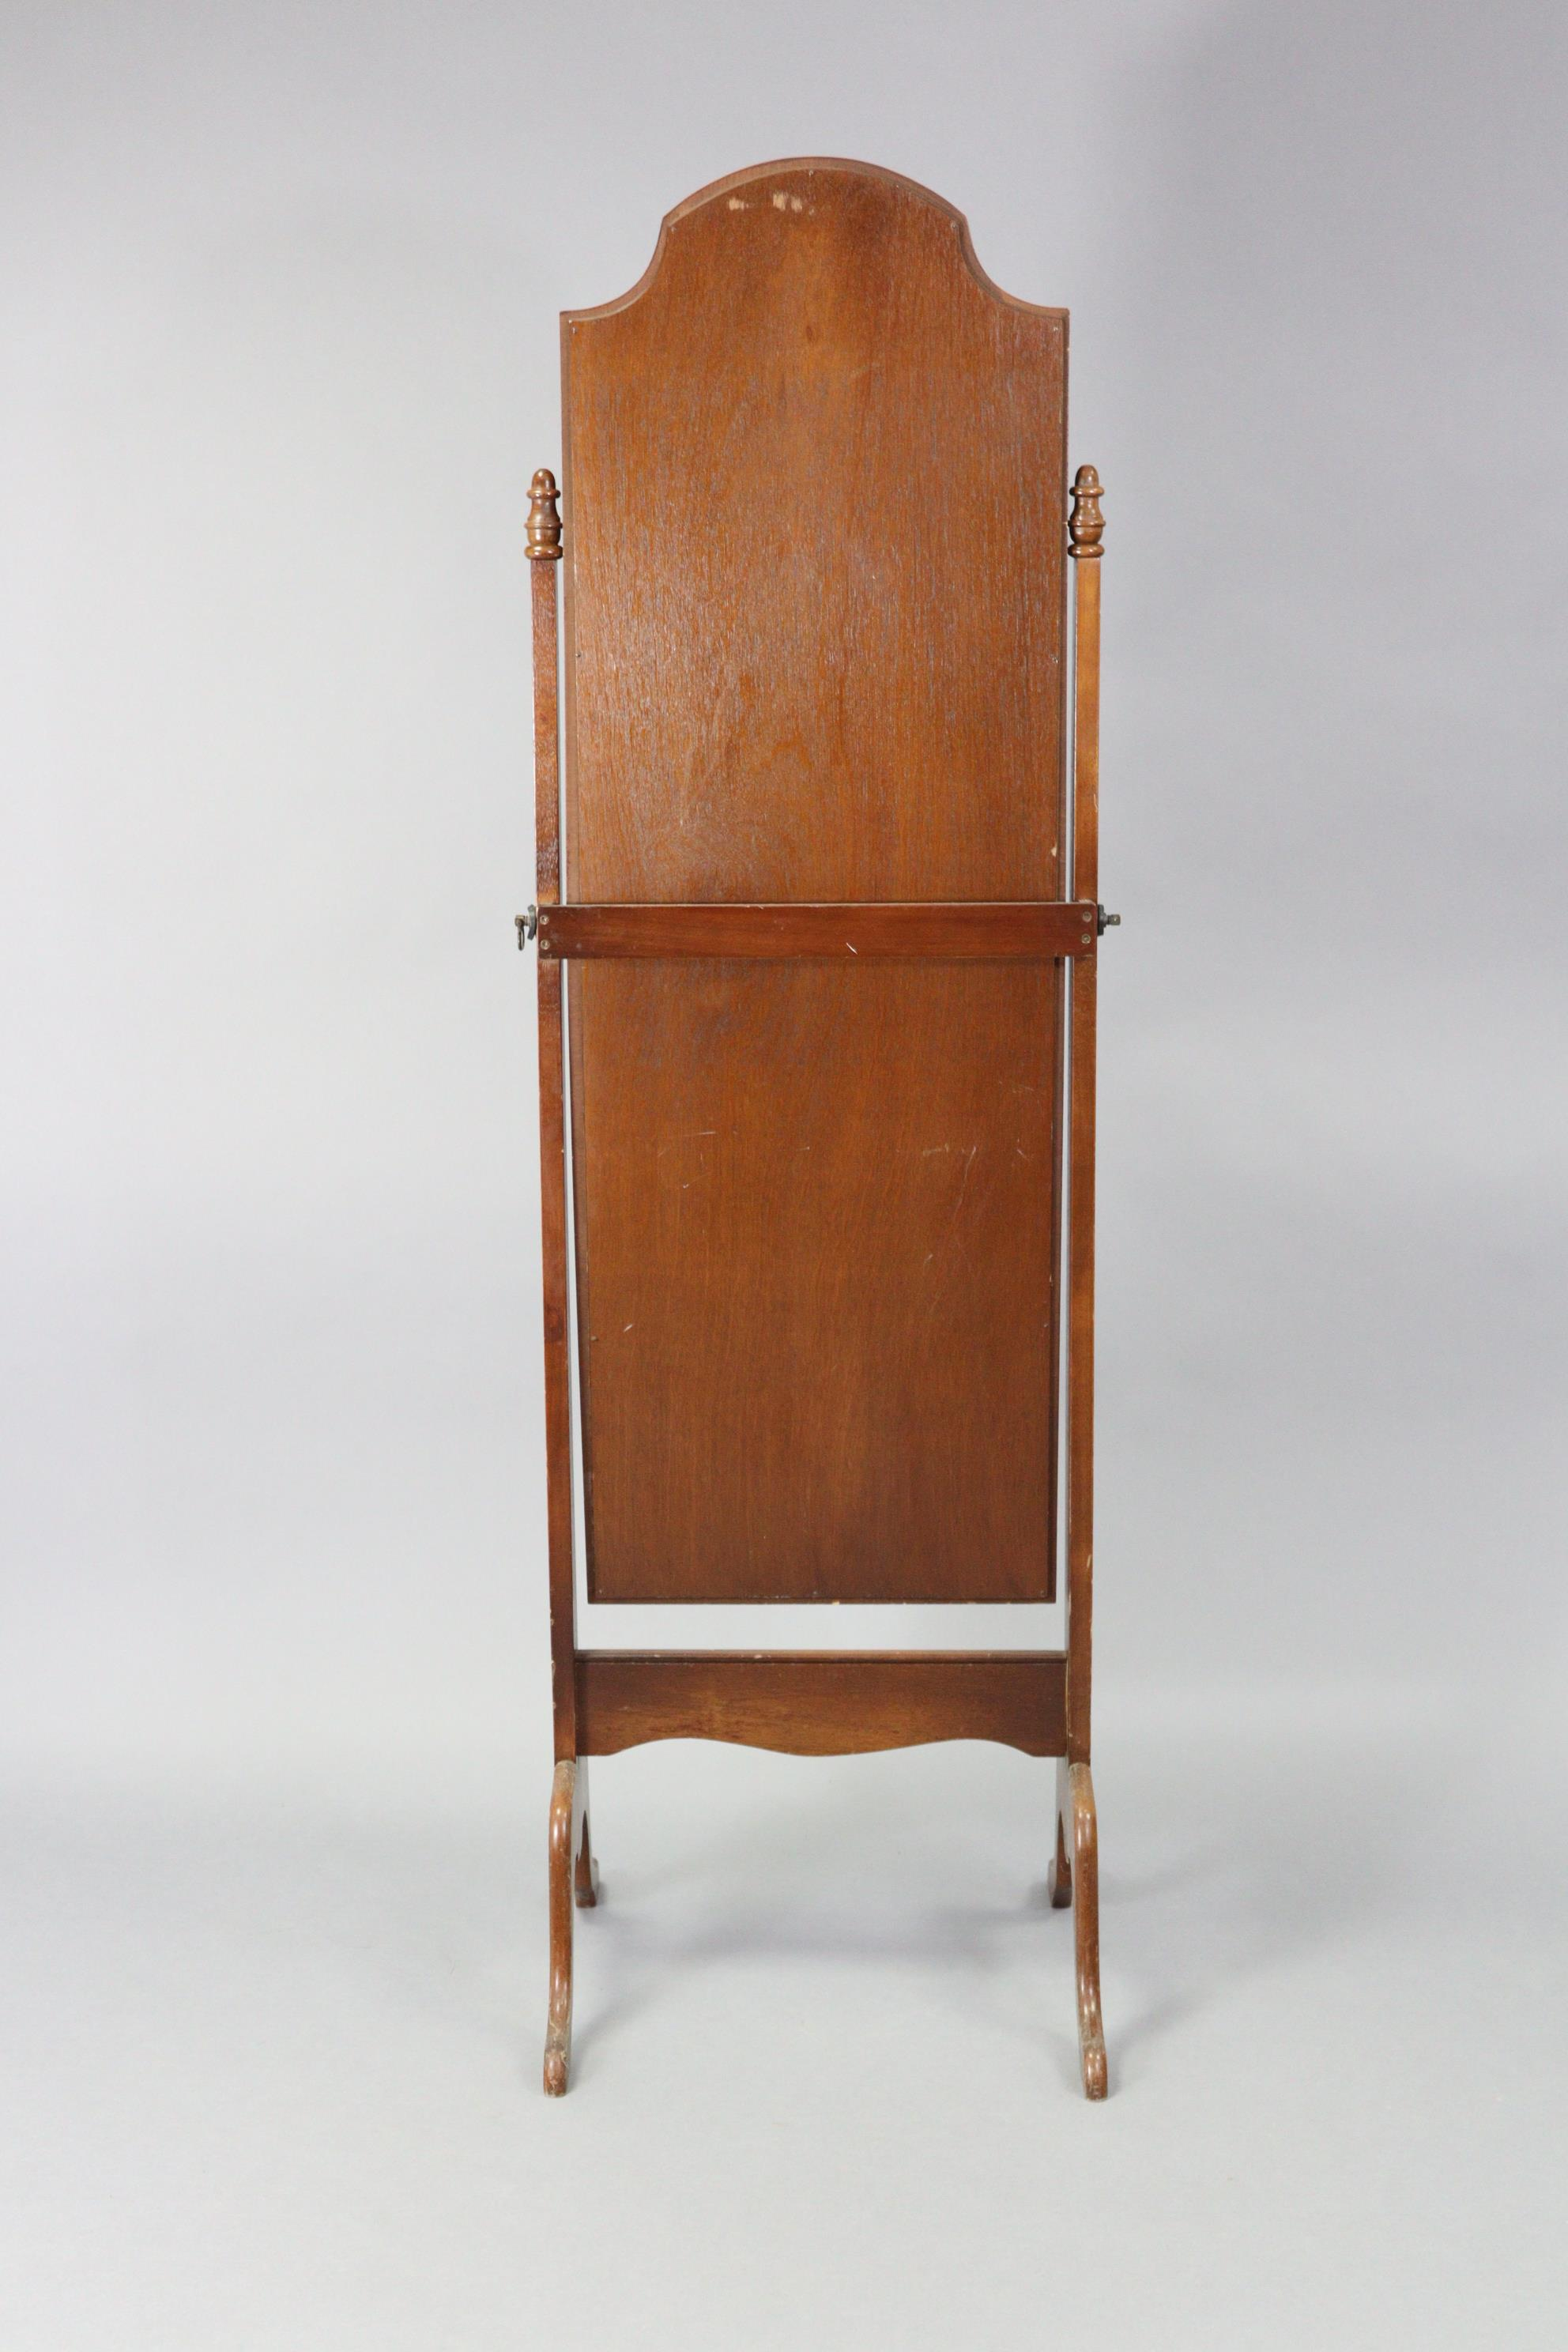 """A mahogany rectangular cheval mirror on square tapered supports & cabriole legs, 18"""" wide x 61¾"""" - Image 2 of 2"""